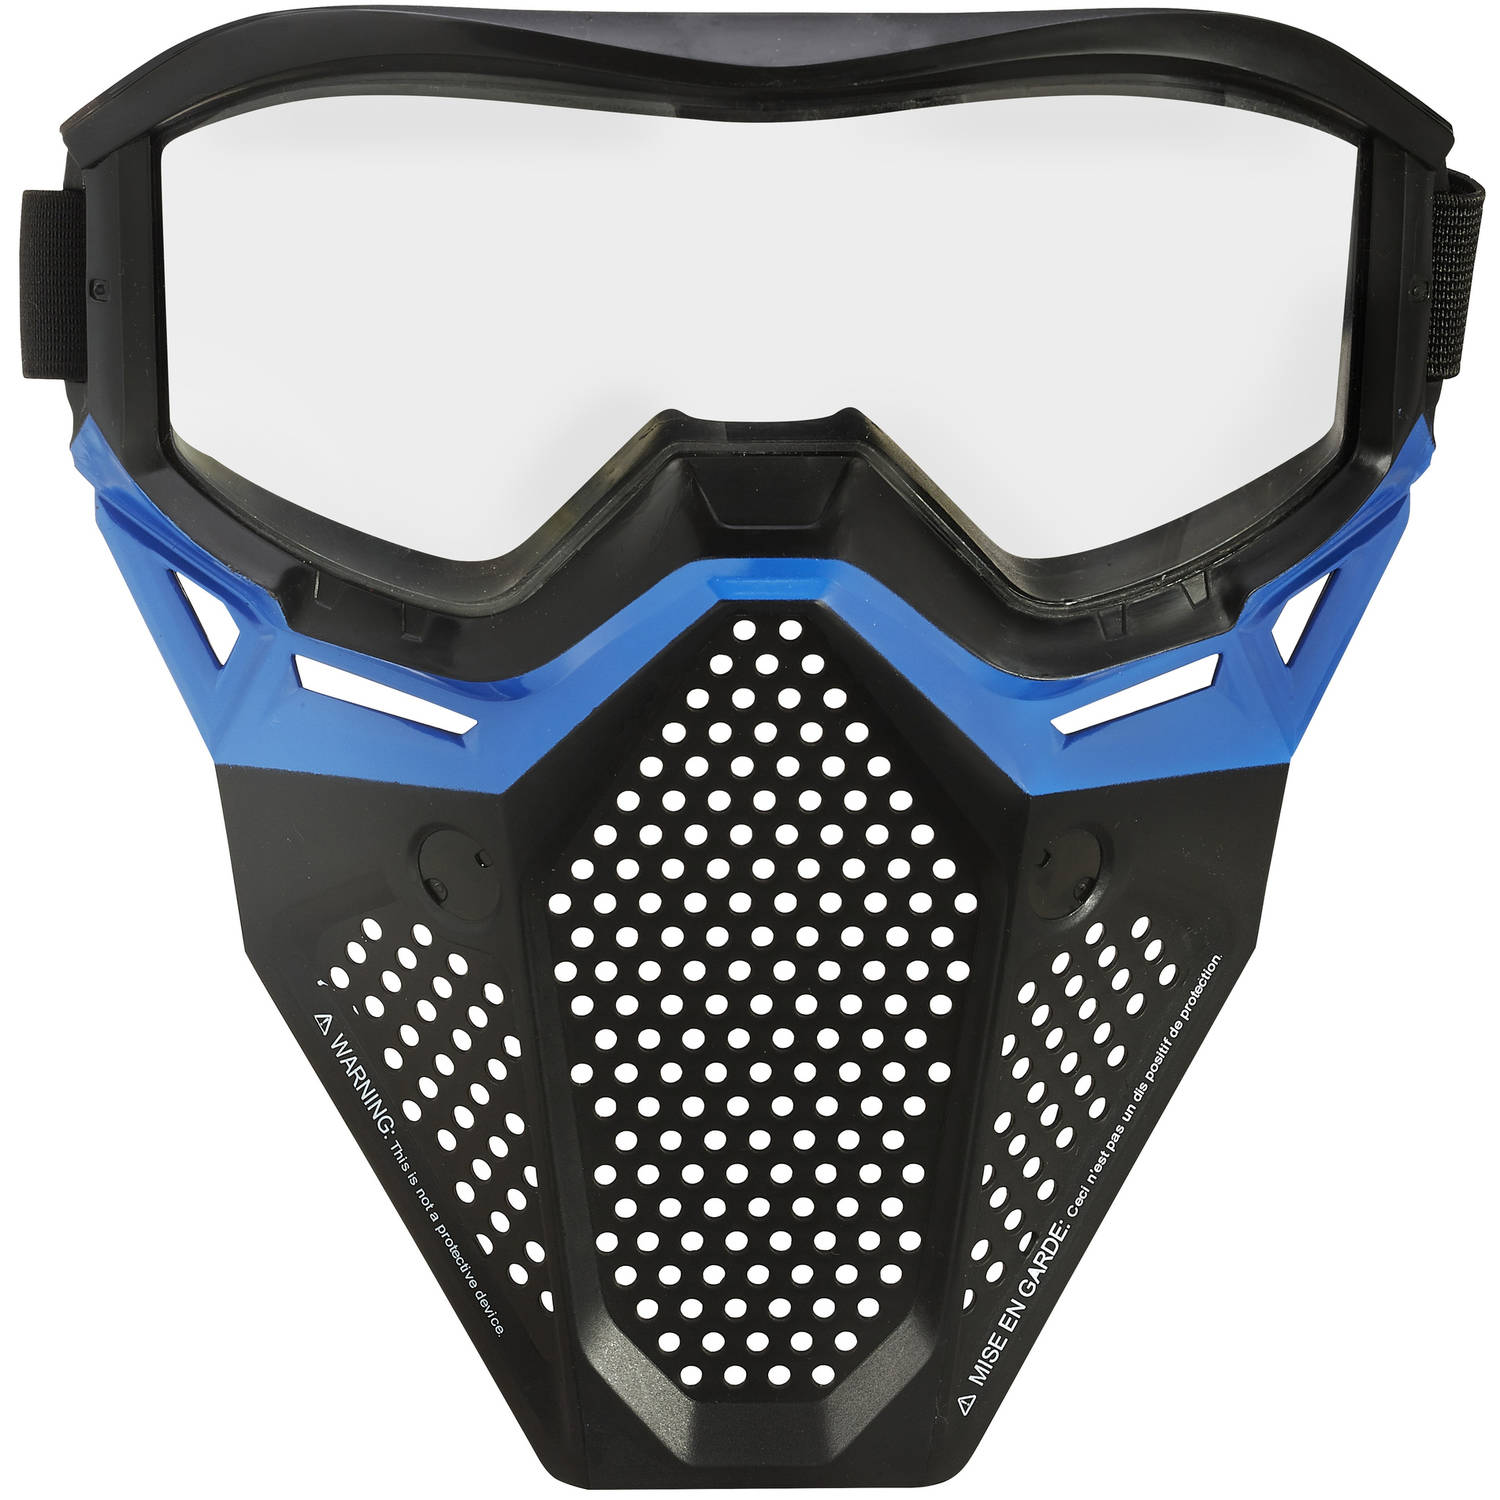 Nerf Rival Face Mask, Blue by Hasbro